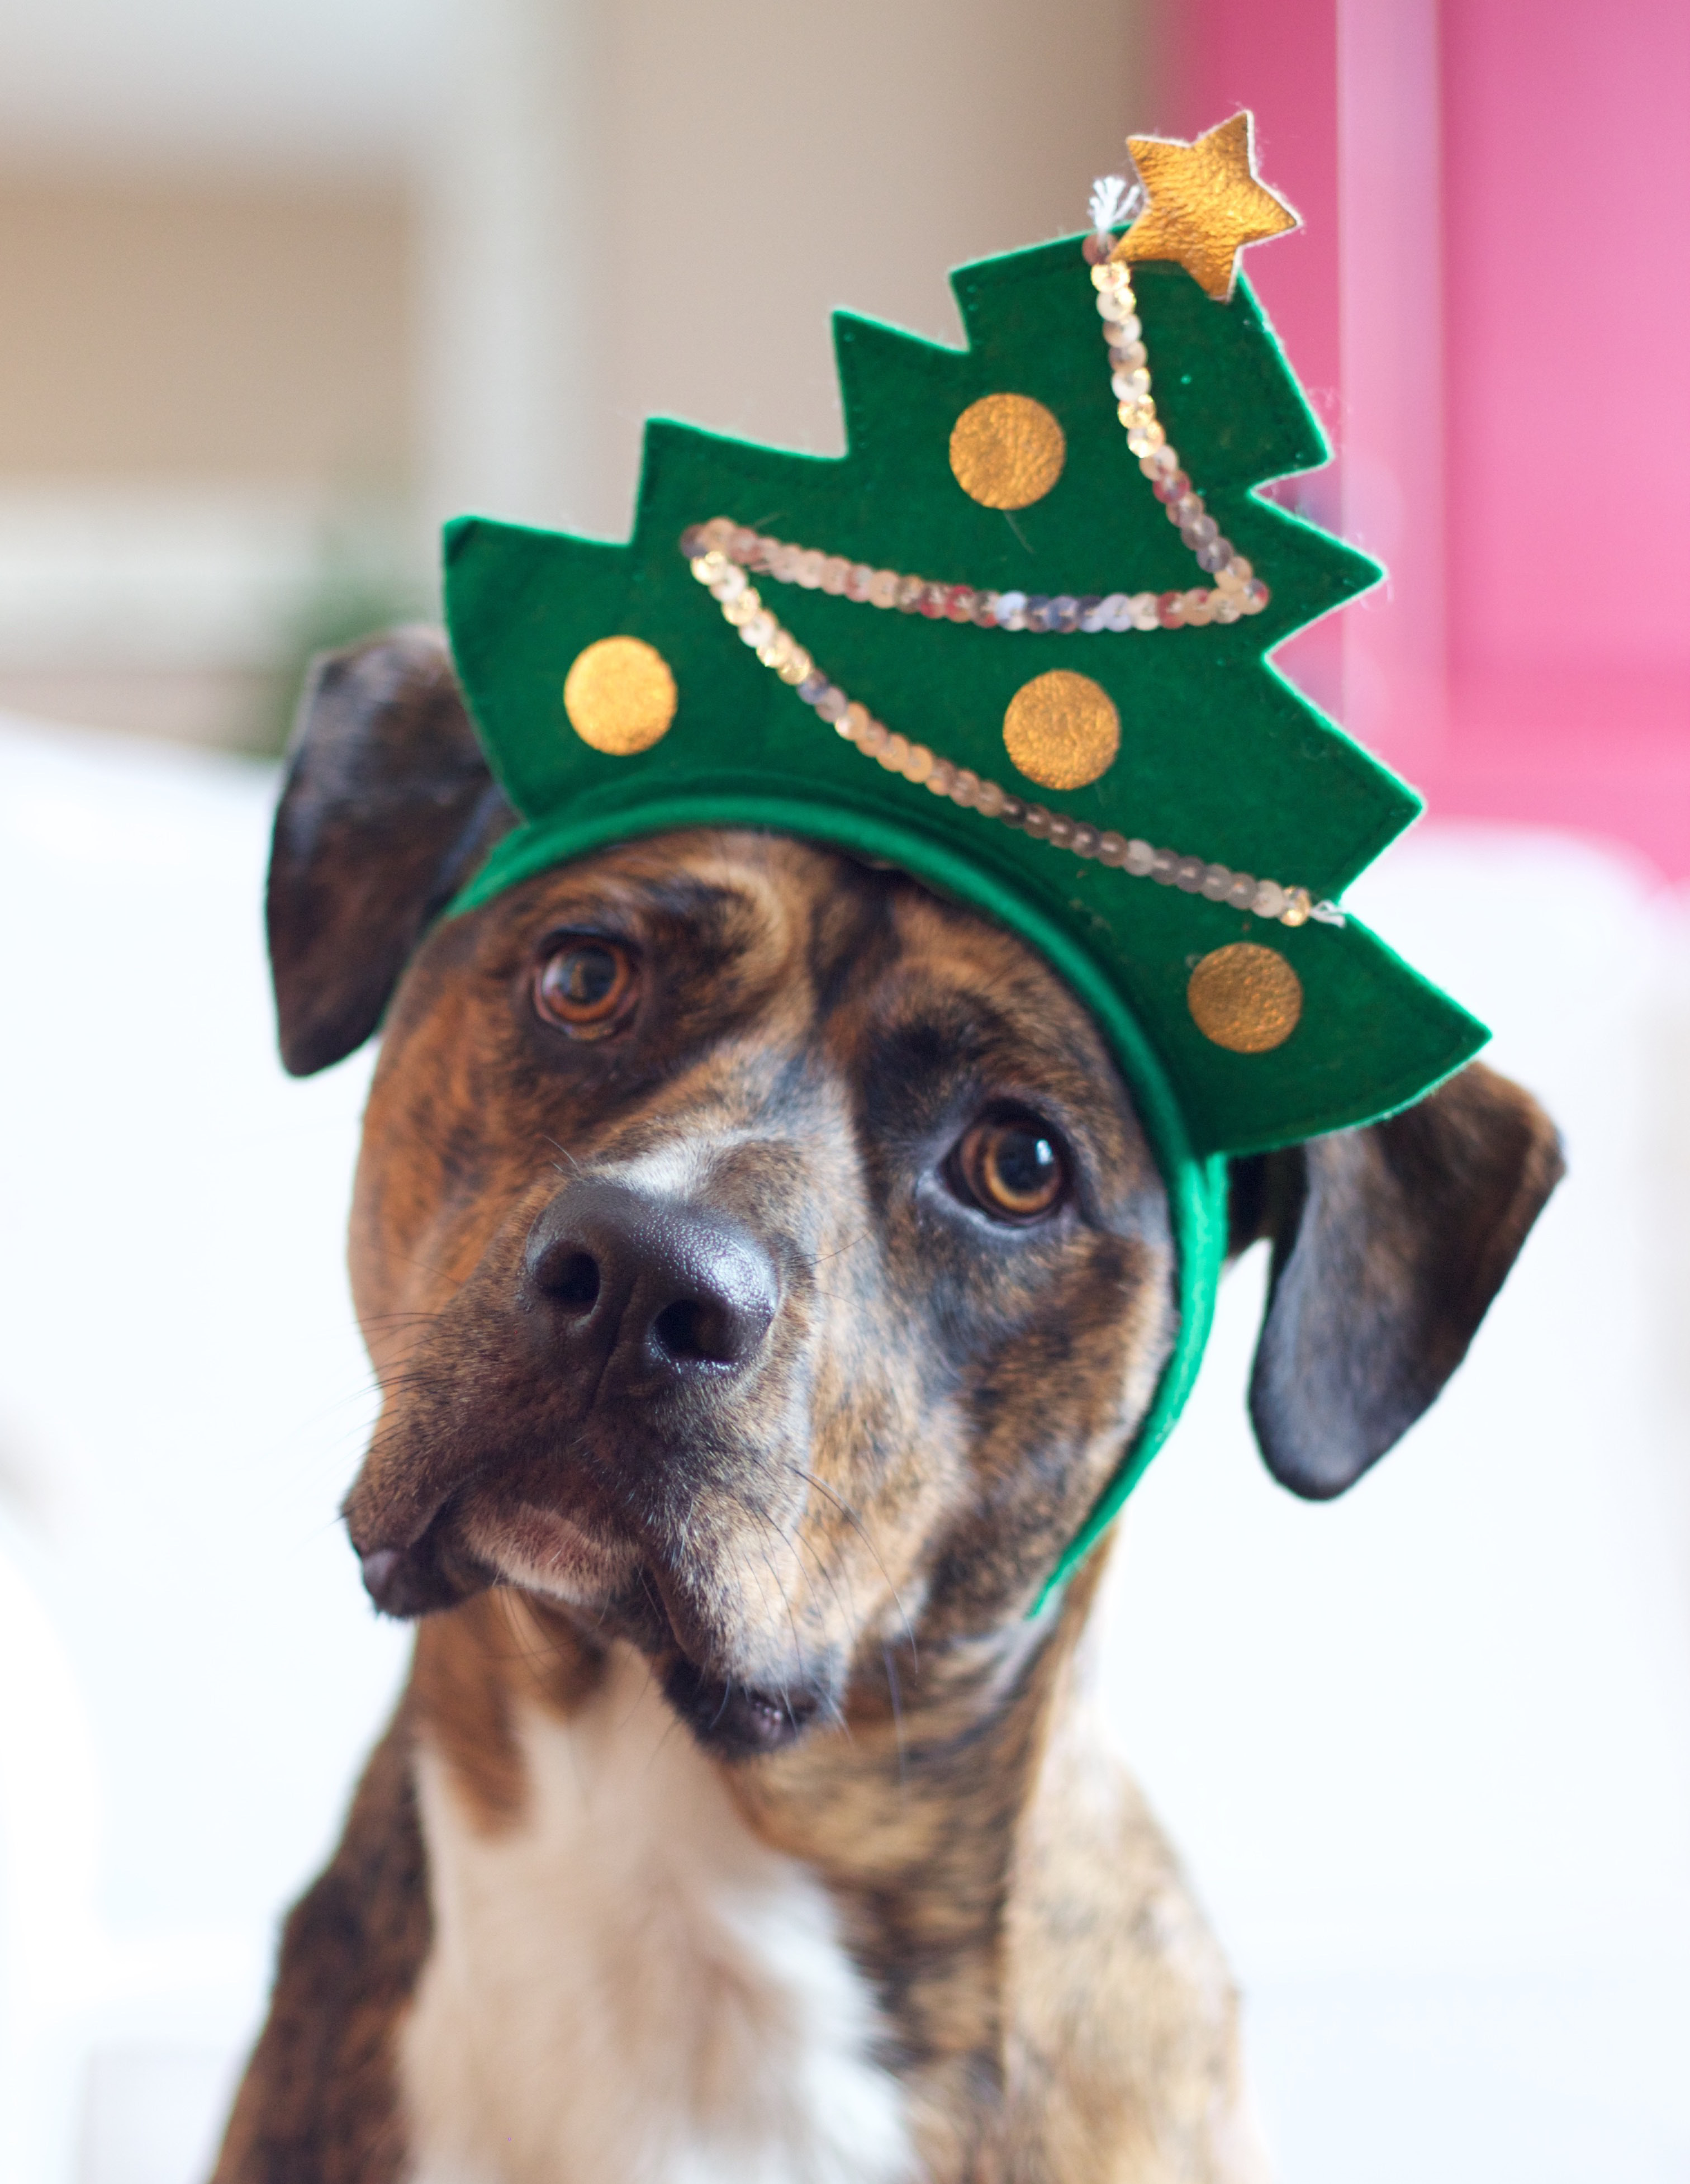 Photos of pets posing in front of a Christmas tree, sitting on